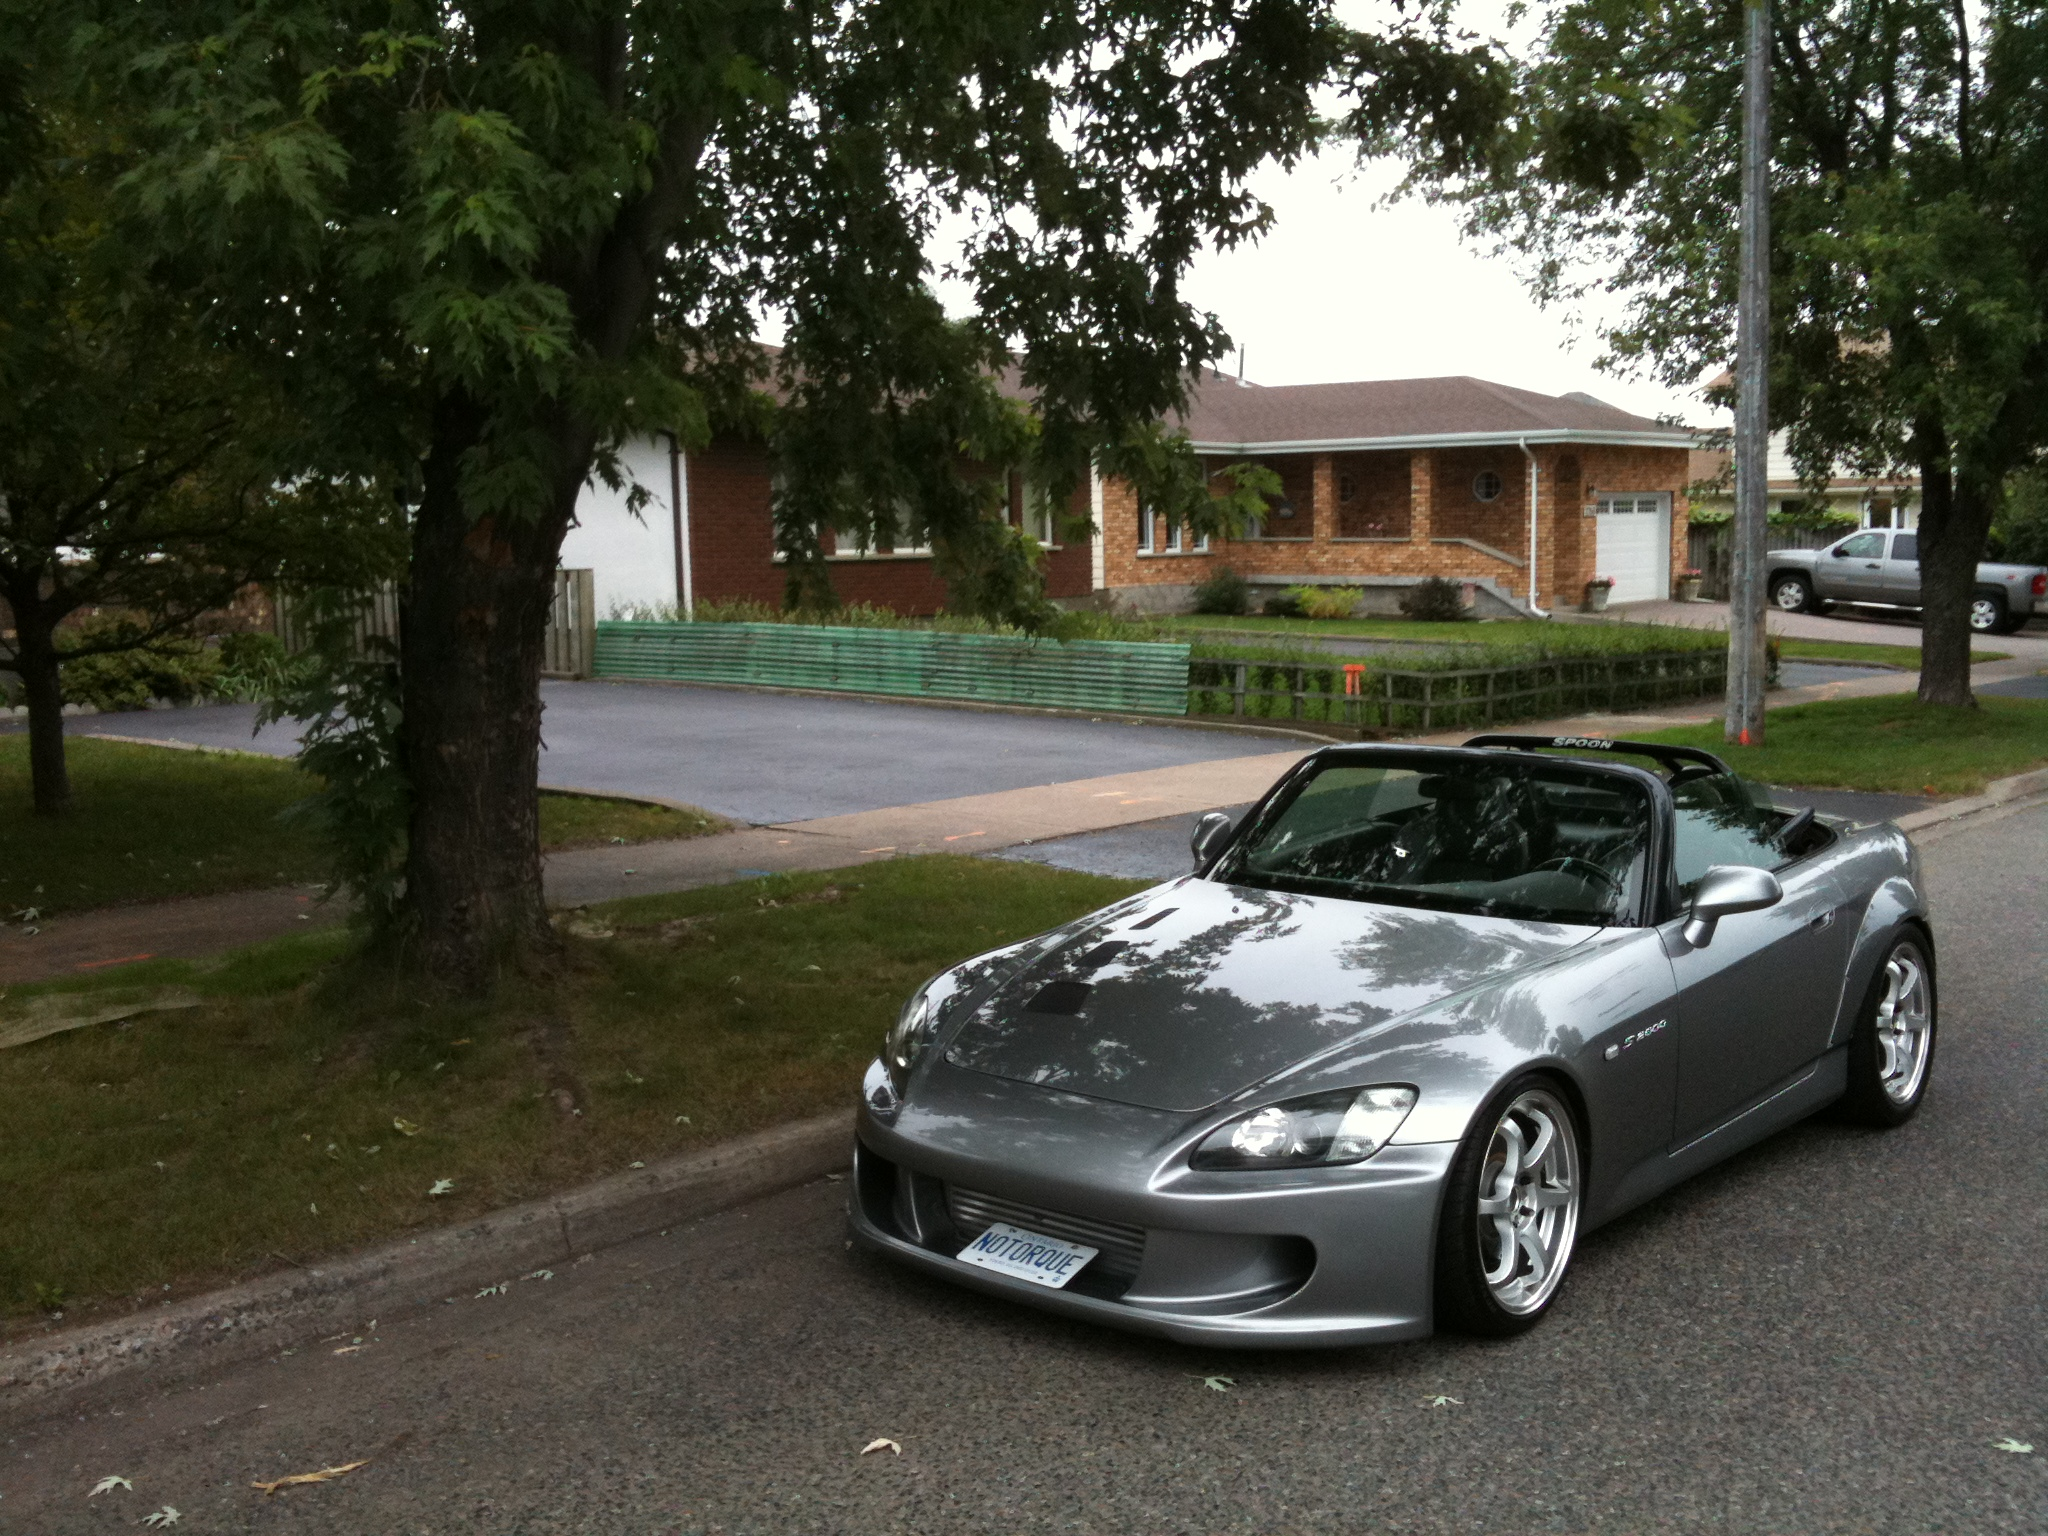 2000 Honda S2000 Garrett GT35R 62mm Billet Turbo